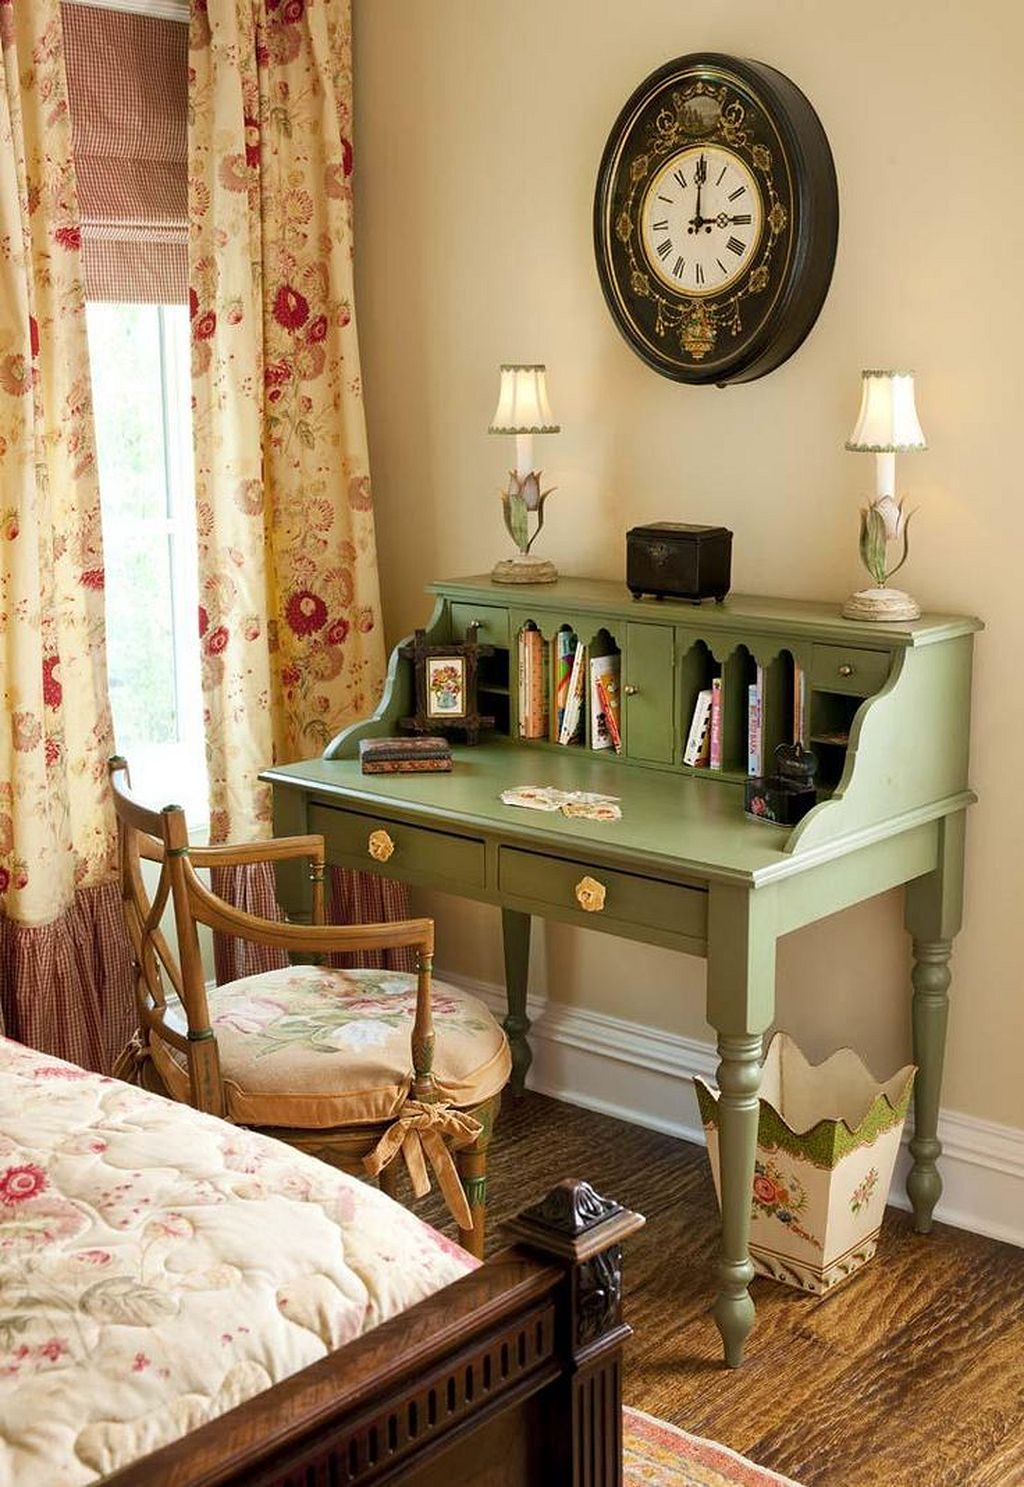 18 Images of English Country Home Decor Ideas - Decor ...